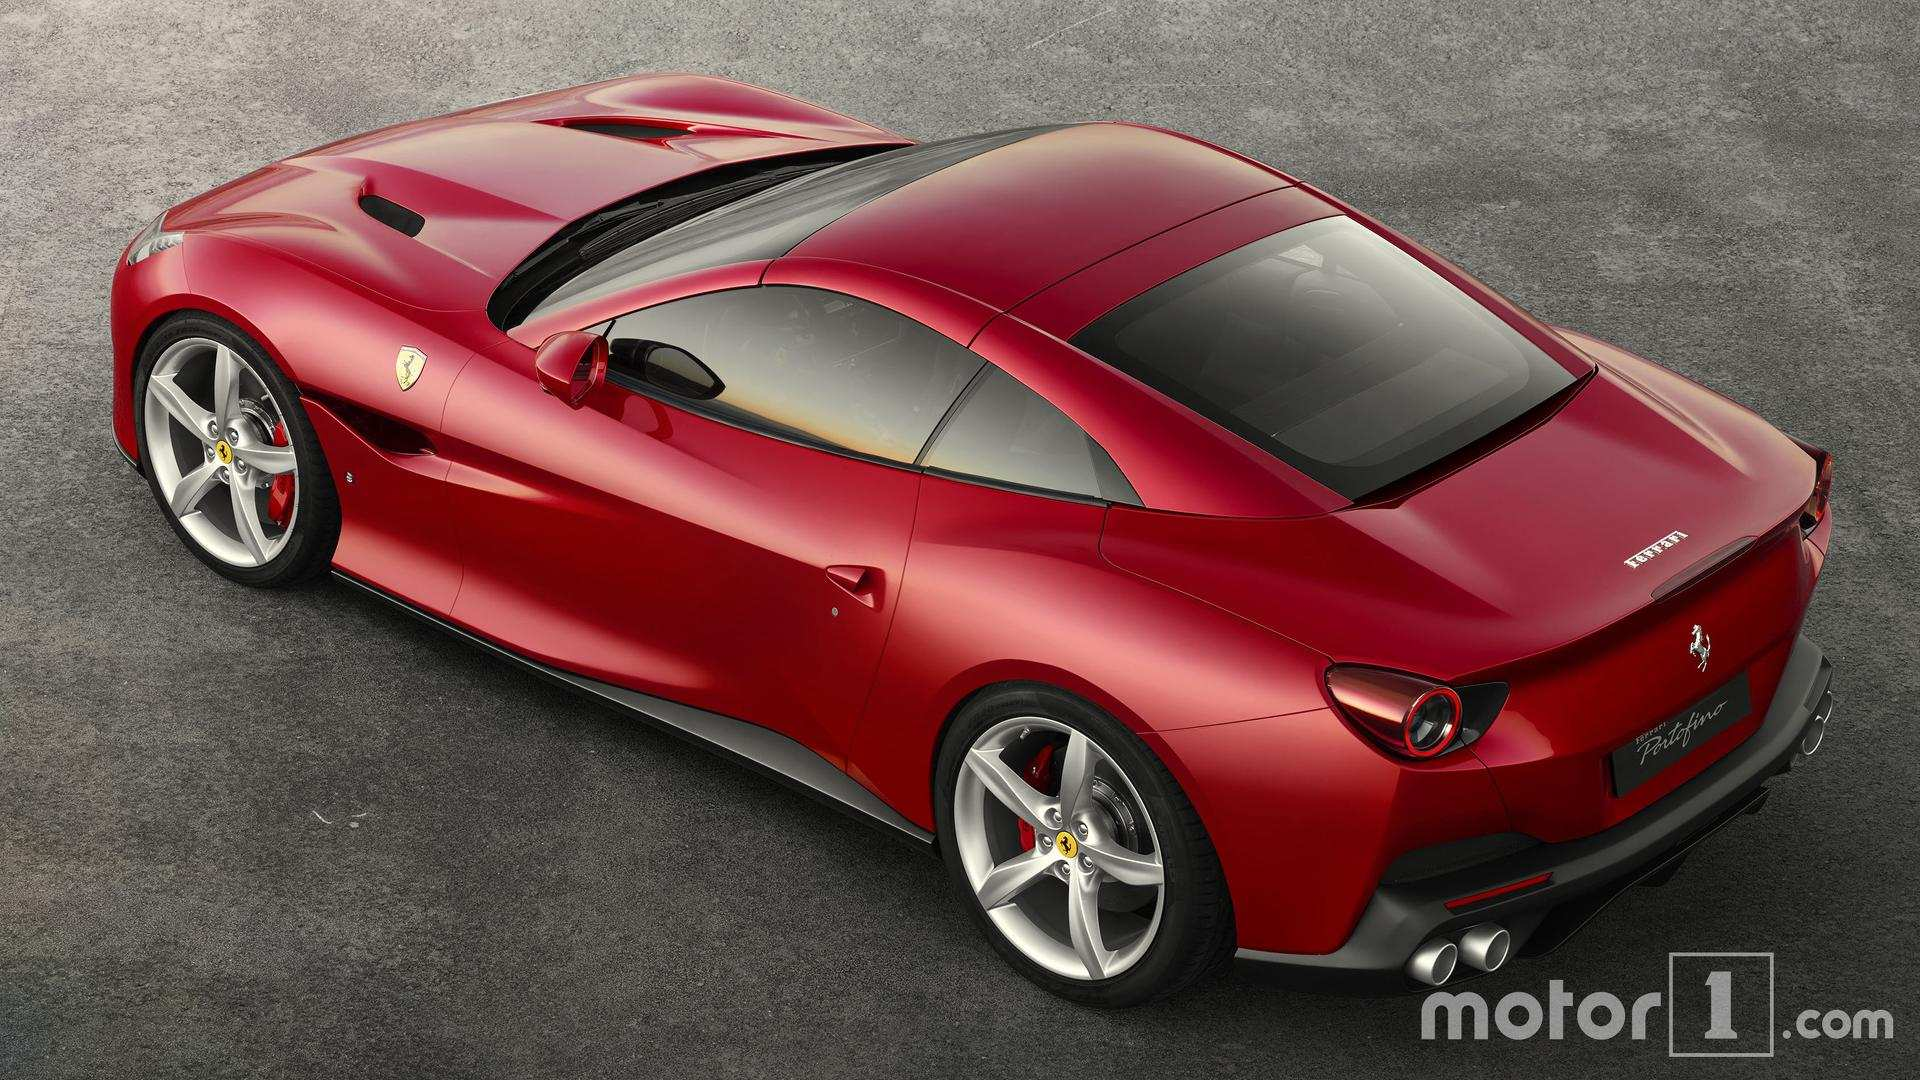 43 Best Review Ferrari California T 2020 First Drive for Ferrari California T 2020